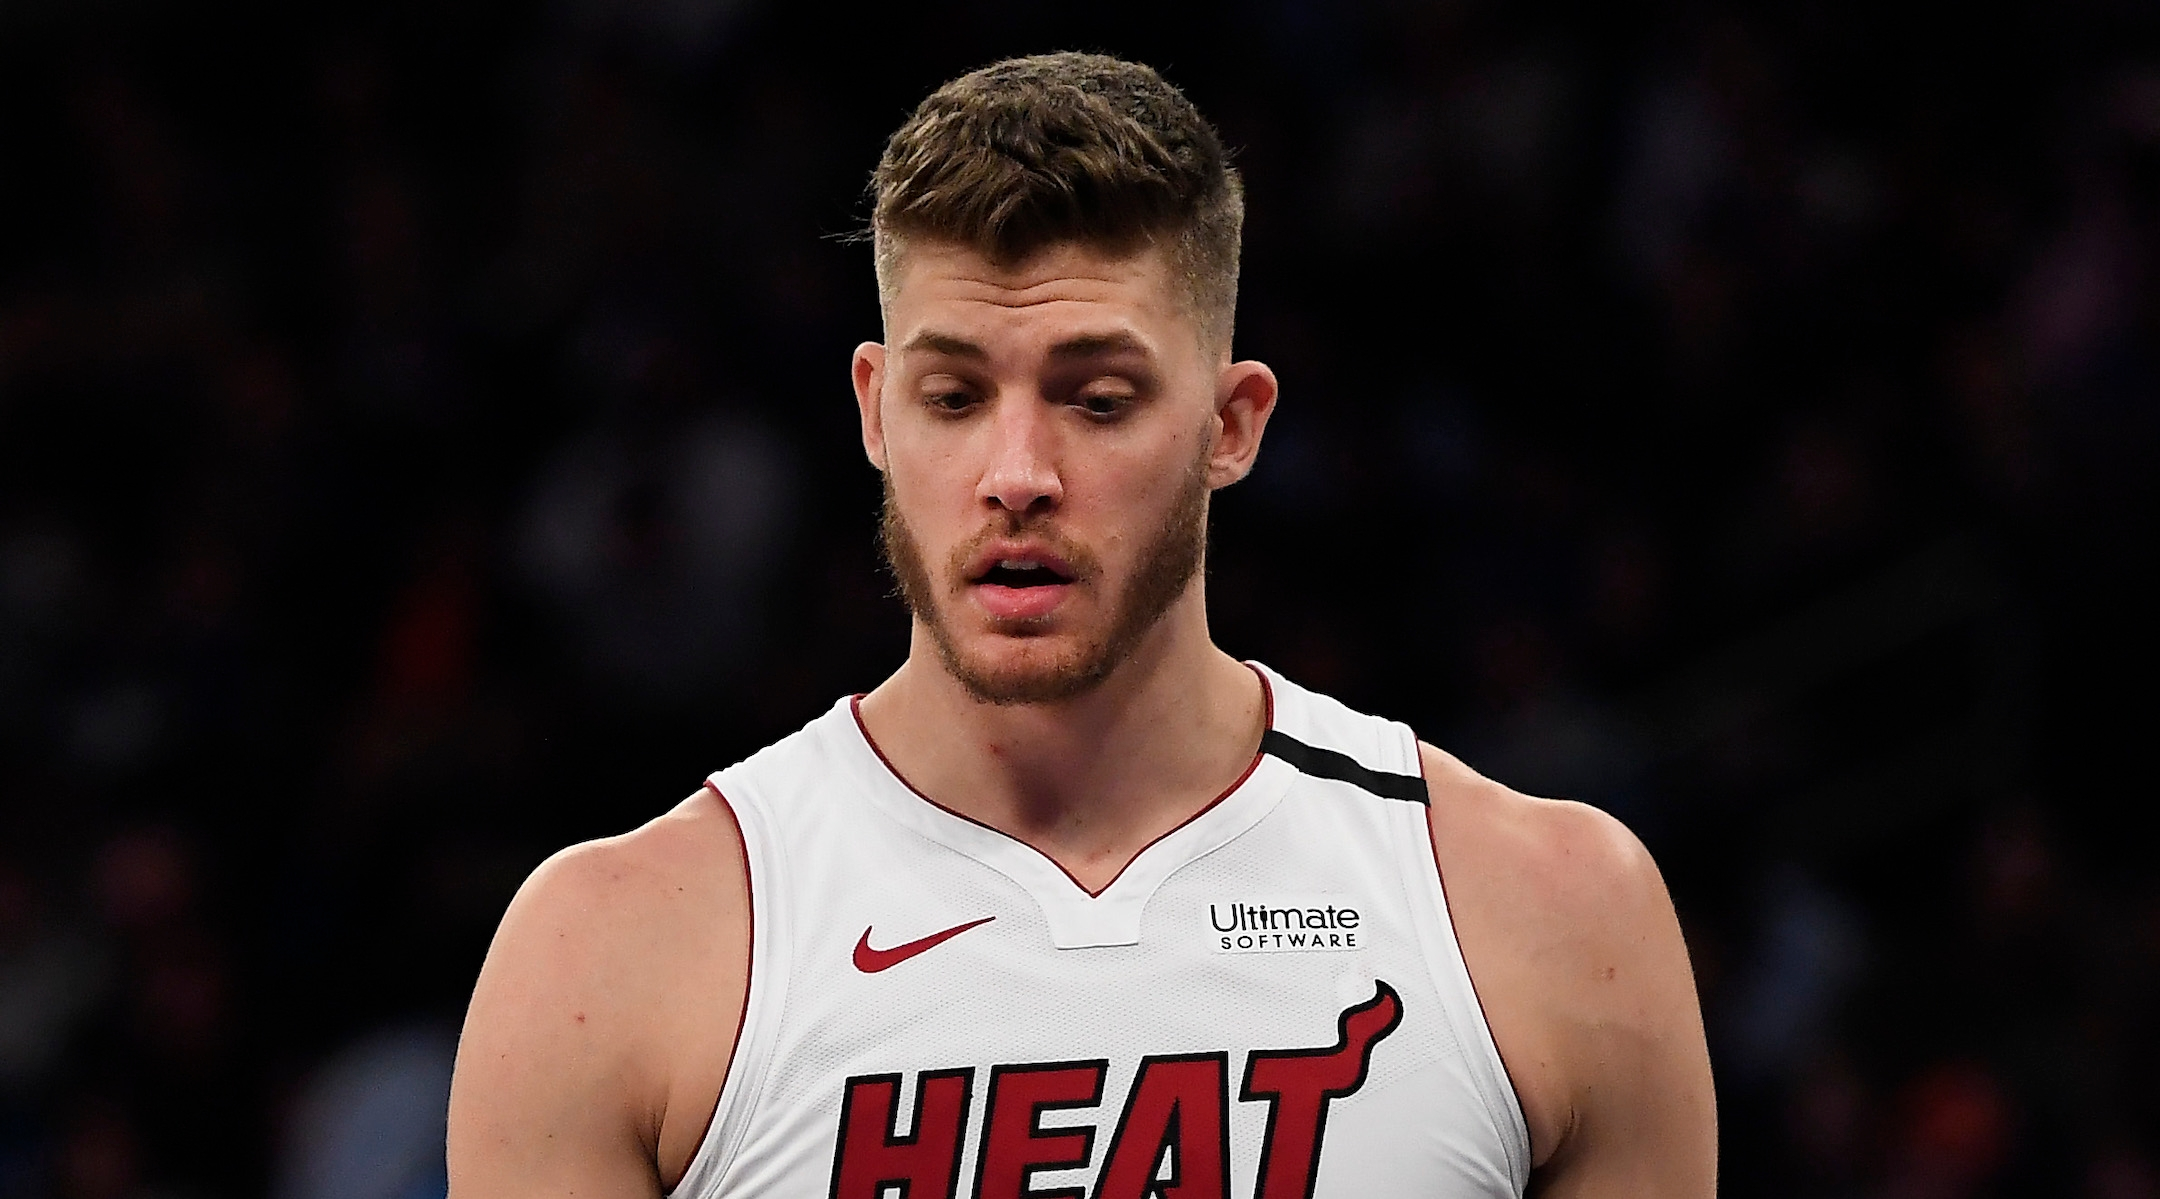 NBA player Meyers Leonard to speak about his anti-Semitism controversy at U of Miami Hillel...